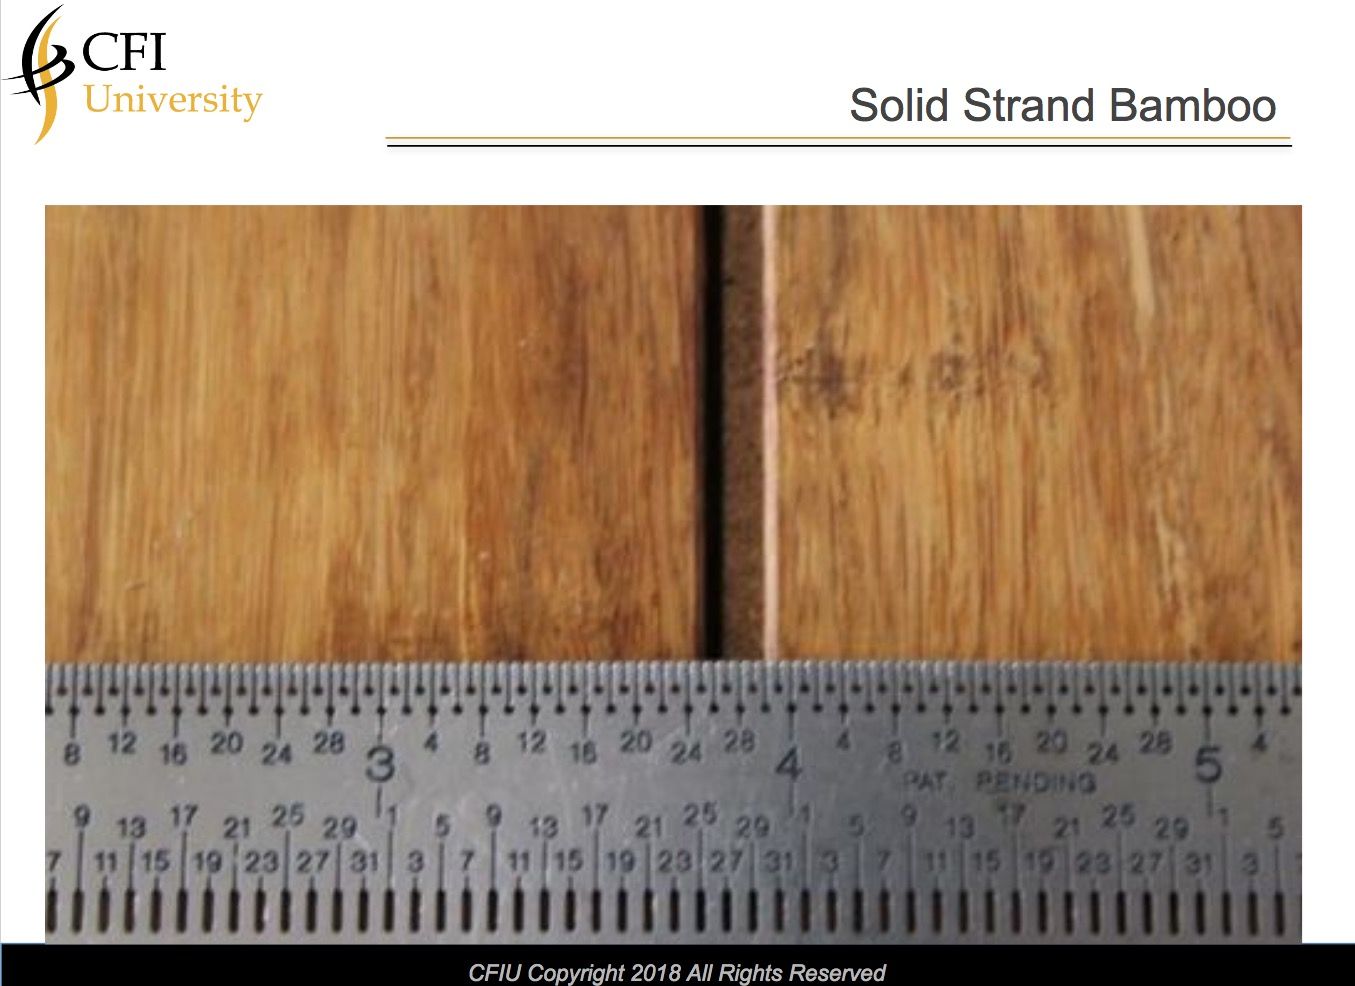 Bamboo, Solid Strand- Course & Exam- Advanced Certification